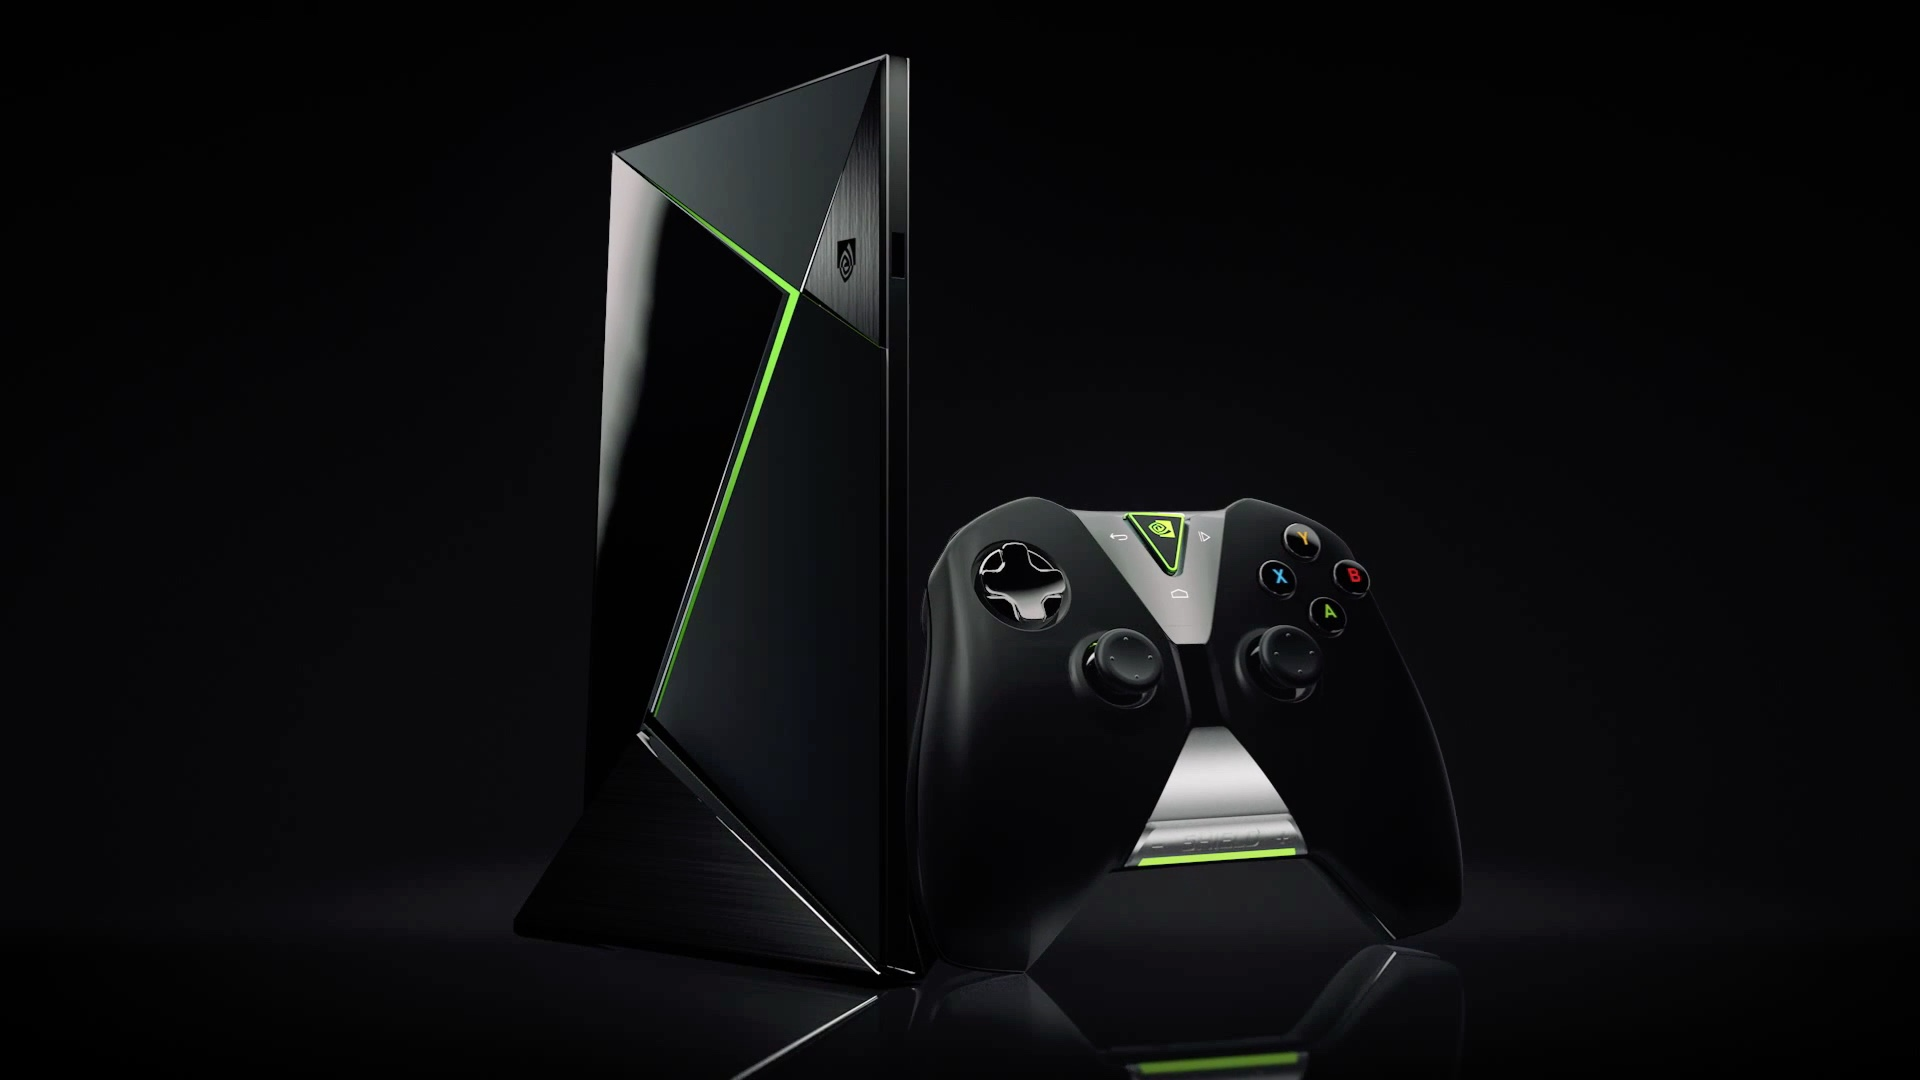 Nvidia Shield TV compatibile con i controller di PS5 e Xbox Series X/S